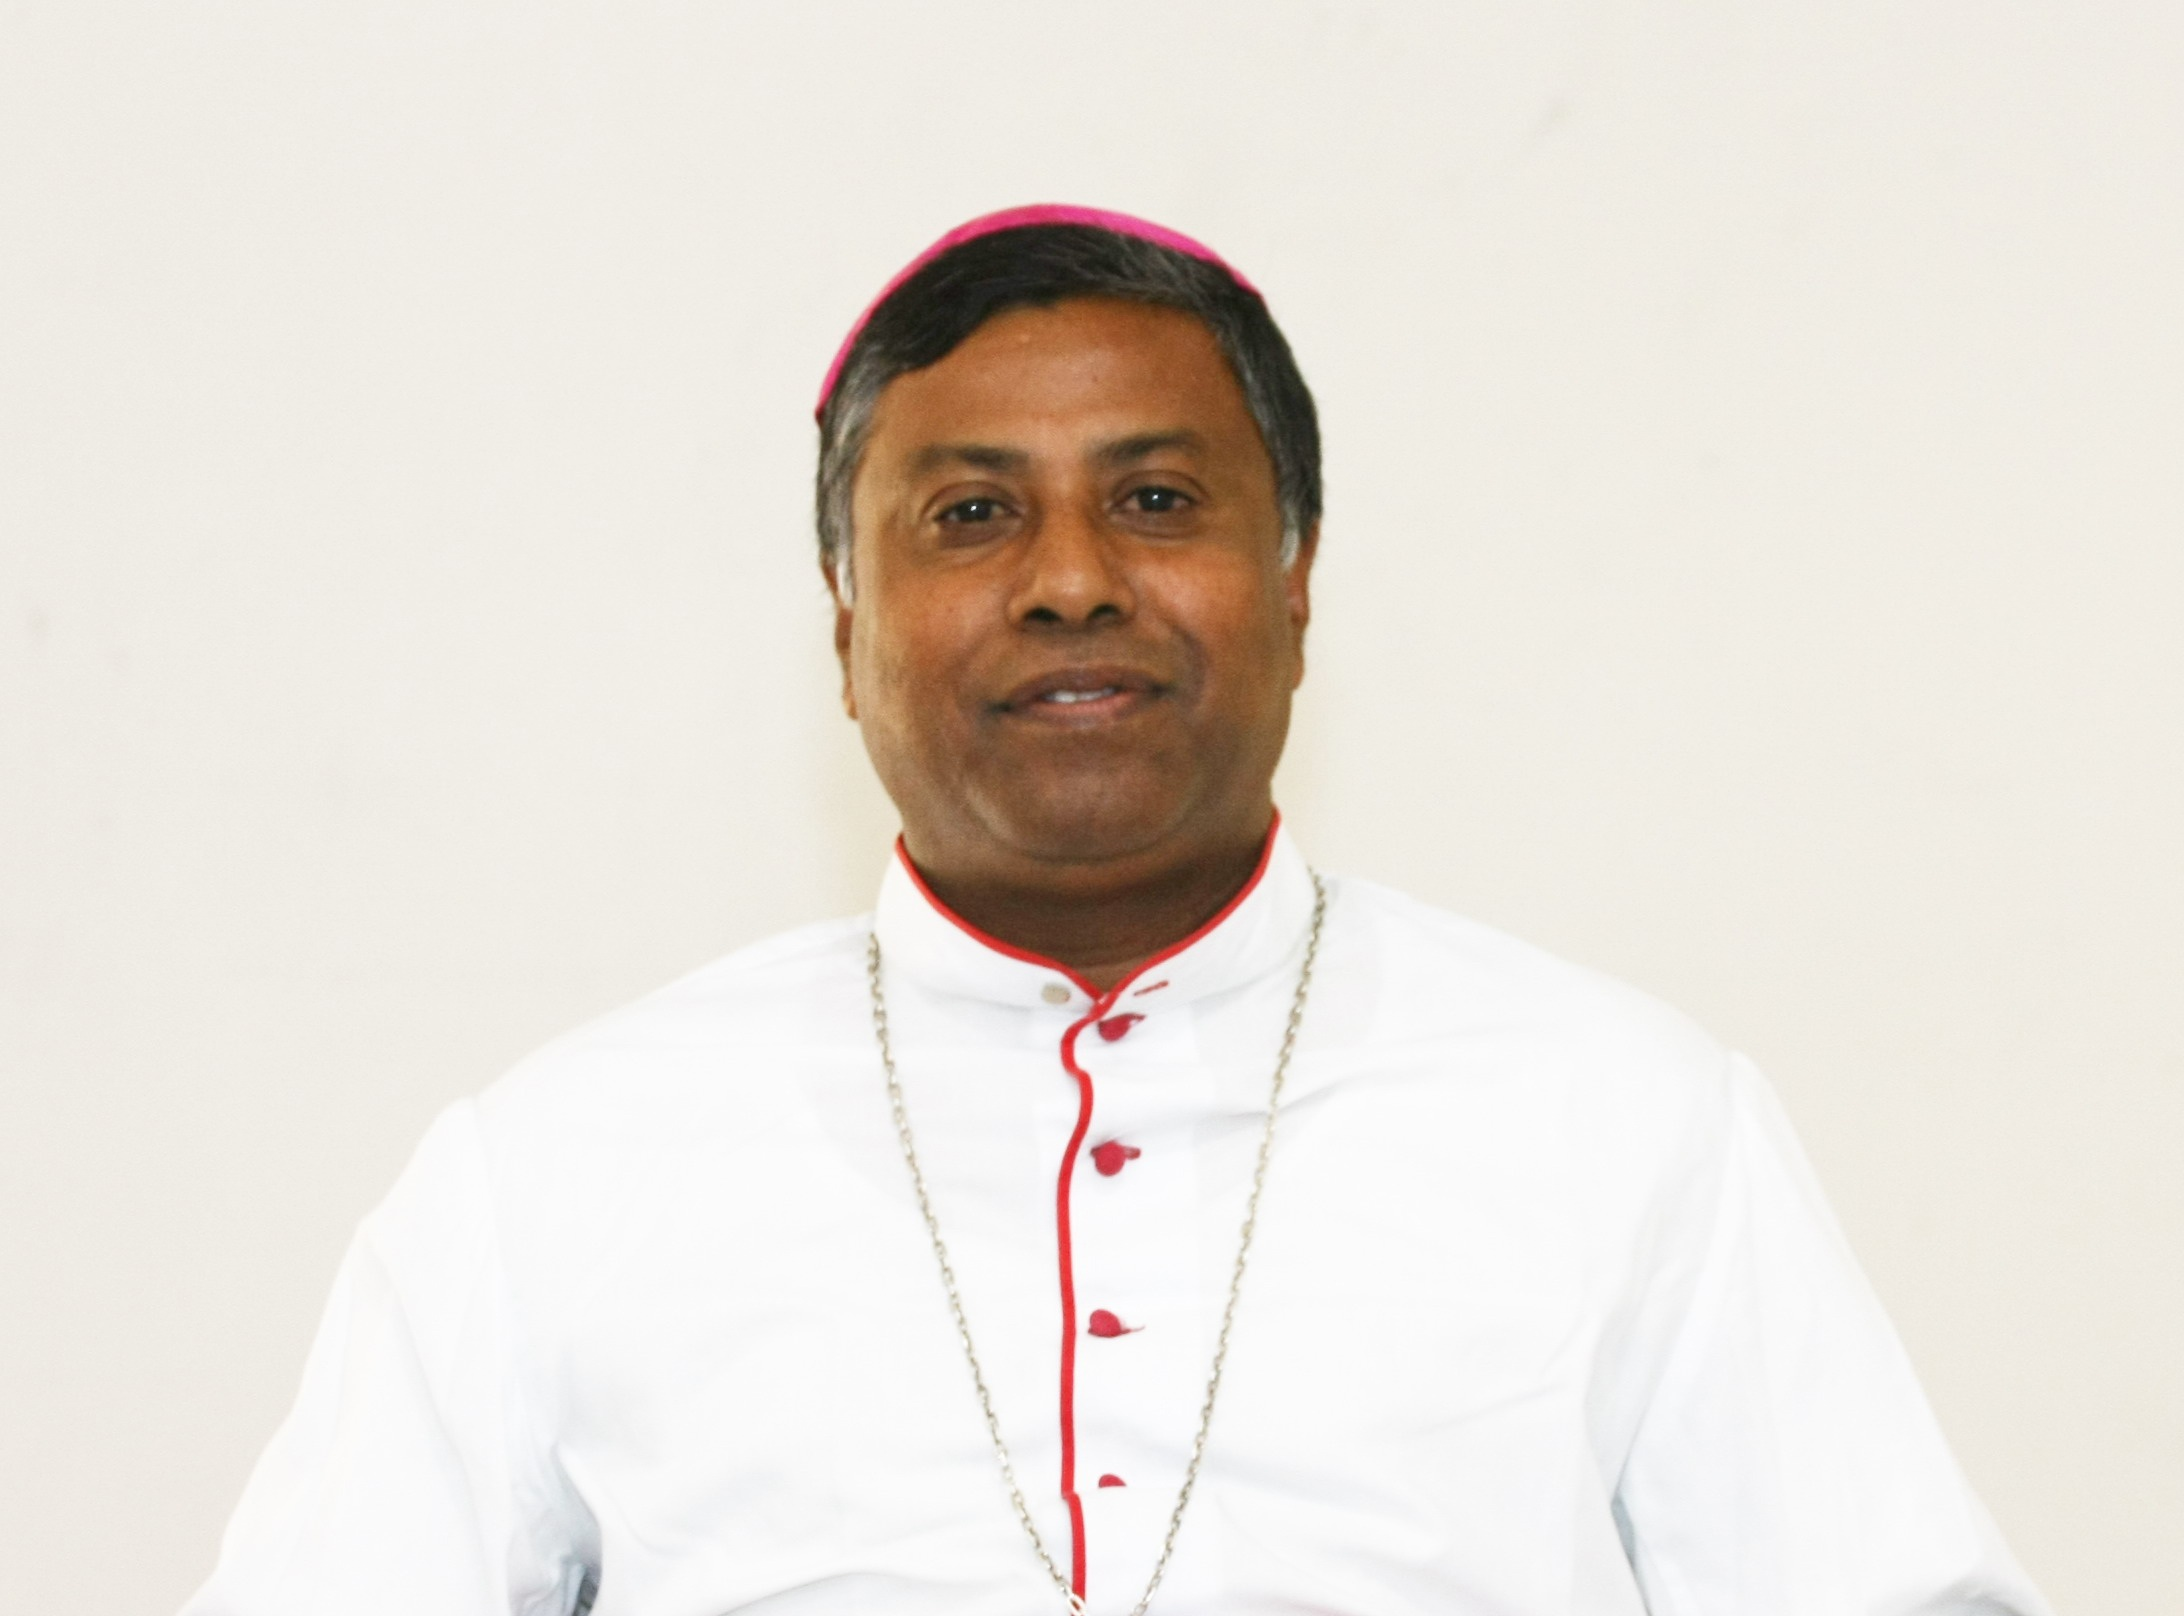 Most Rev. Bejoy N. D'Cruze, OMI